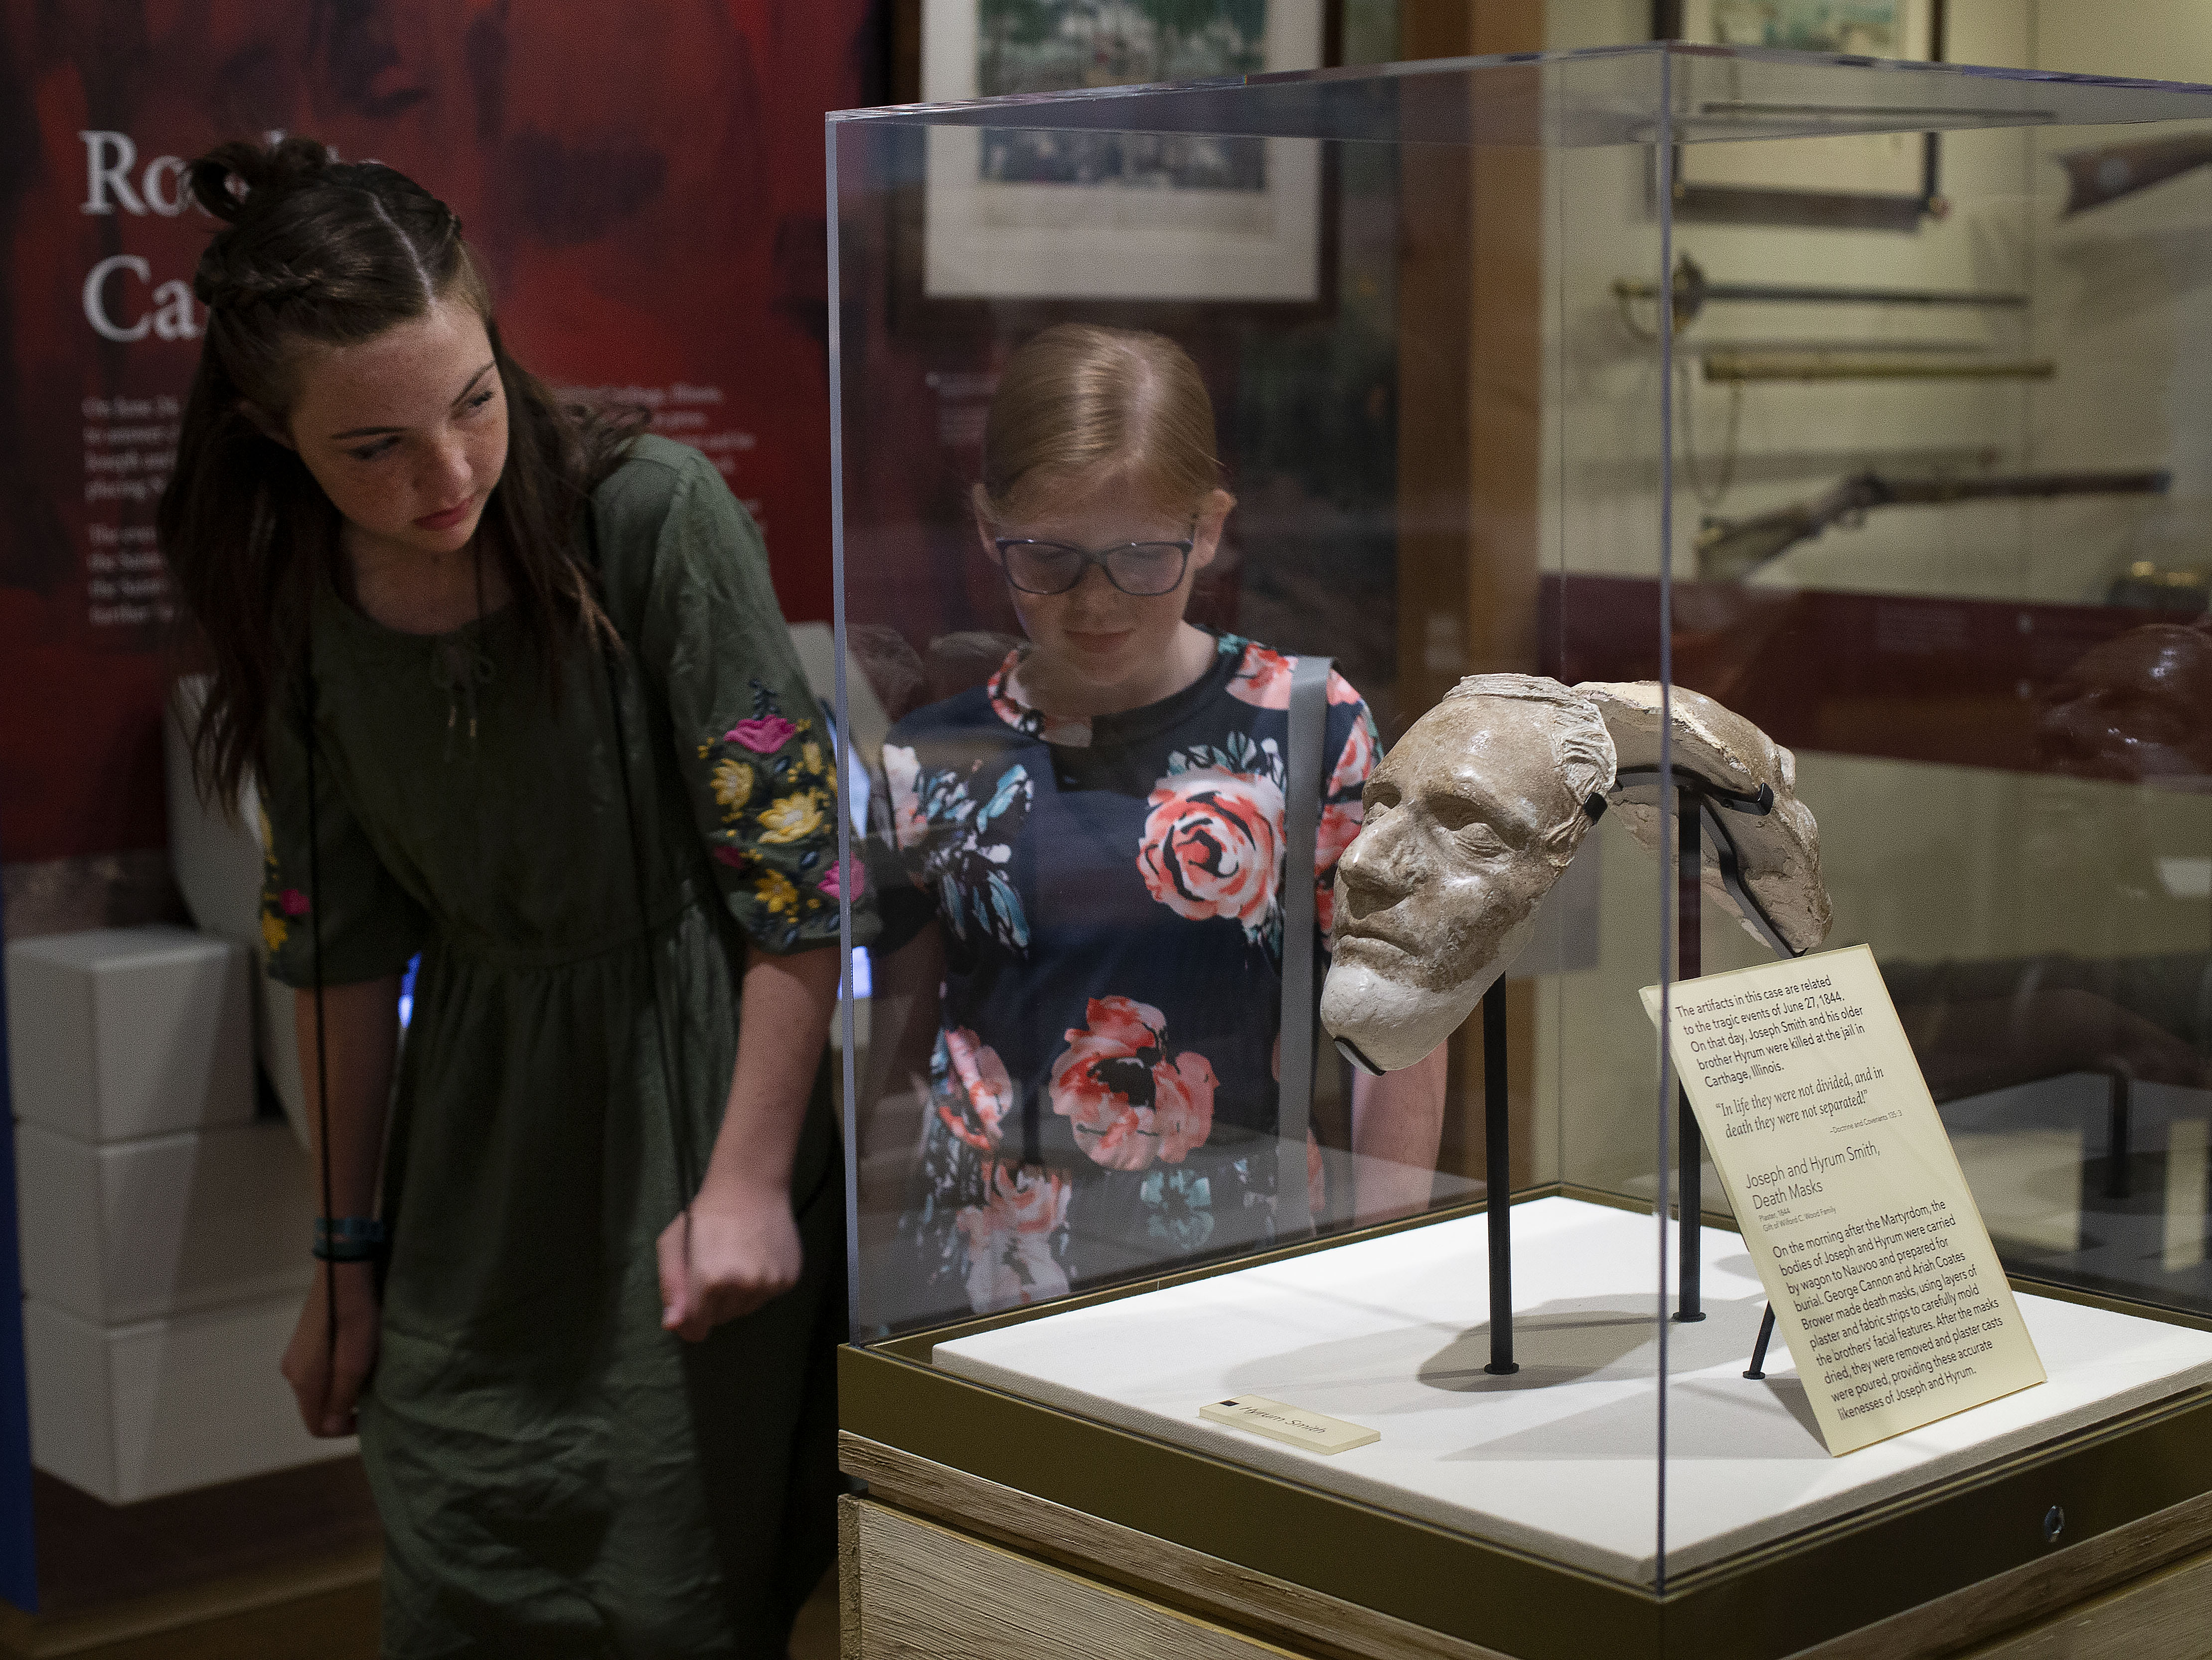 Brielle Fawson, 14, and Savannah Carter, 12, of Grantsville, look at the Dibble death masks of Hyrum and Joseph Smith at the Church History Museum in Salt Lake City on Thursday, June 13, 2019.